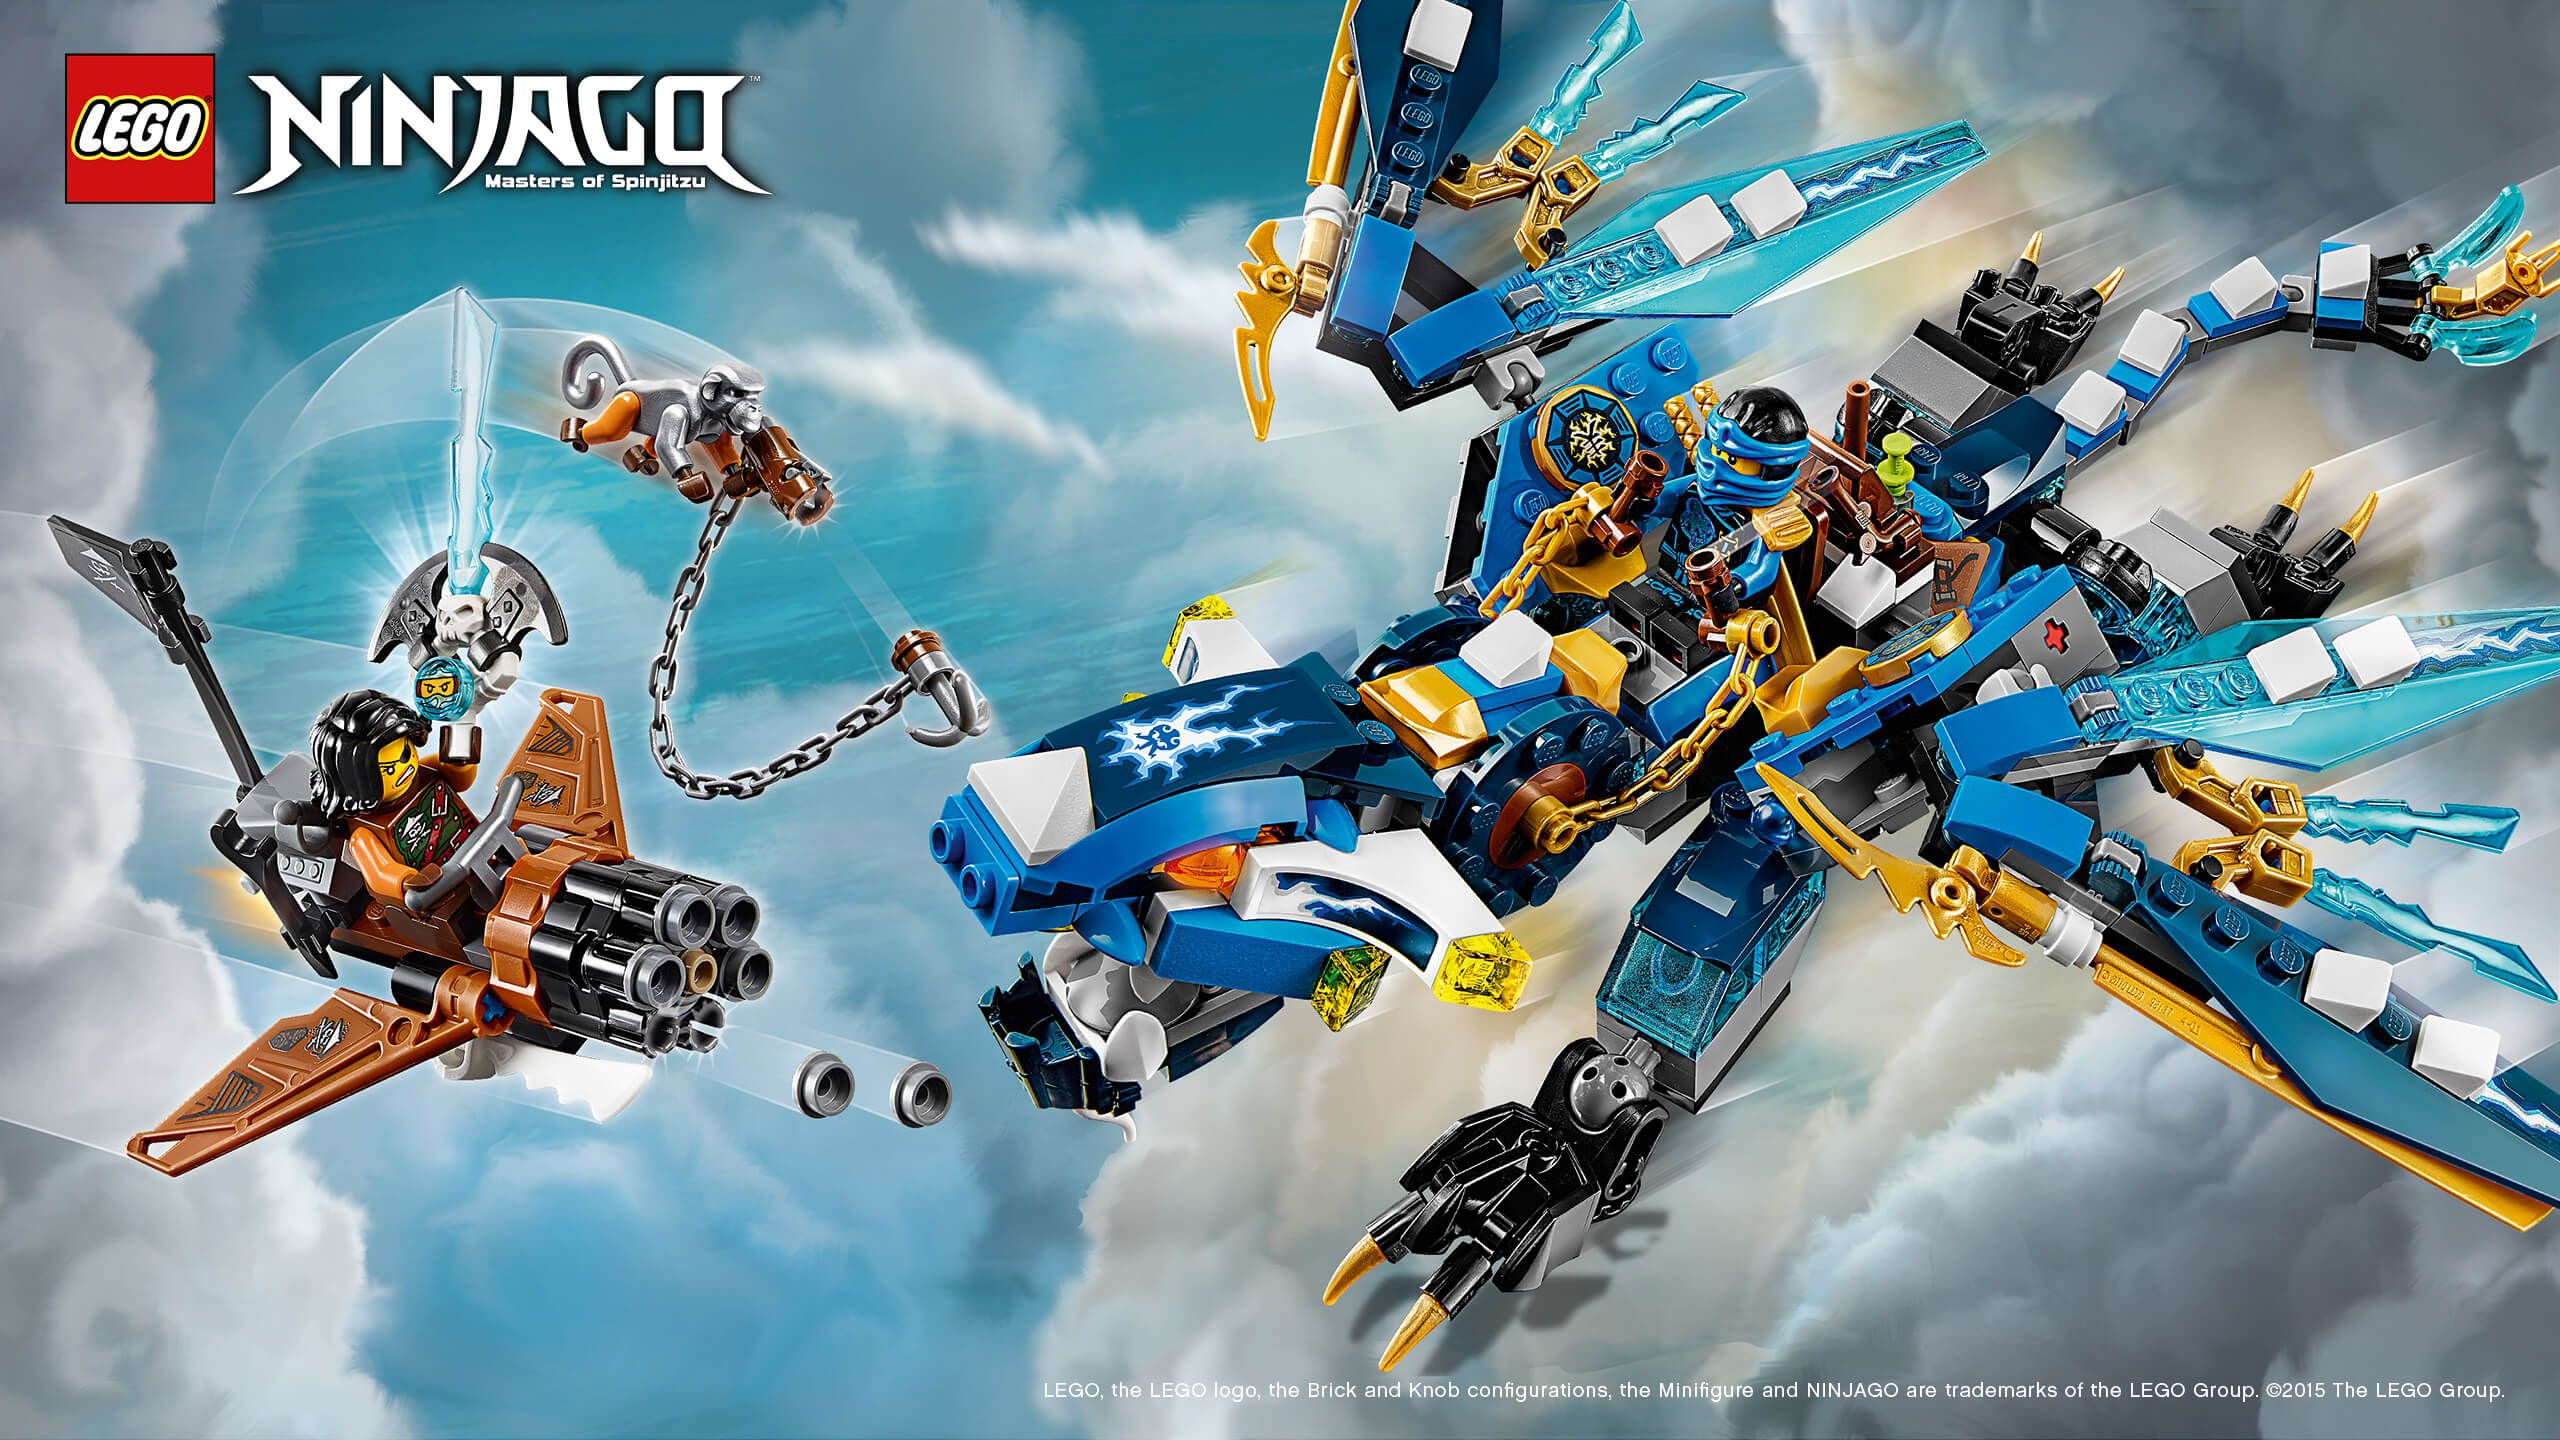 Lego ninjago zane wallpapers top free lego ninjago zane - Ninjago phone wallpaper ...